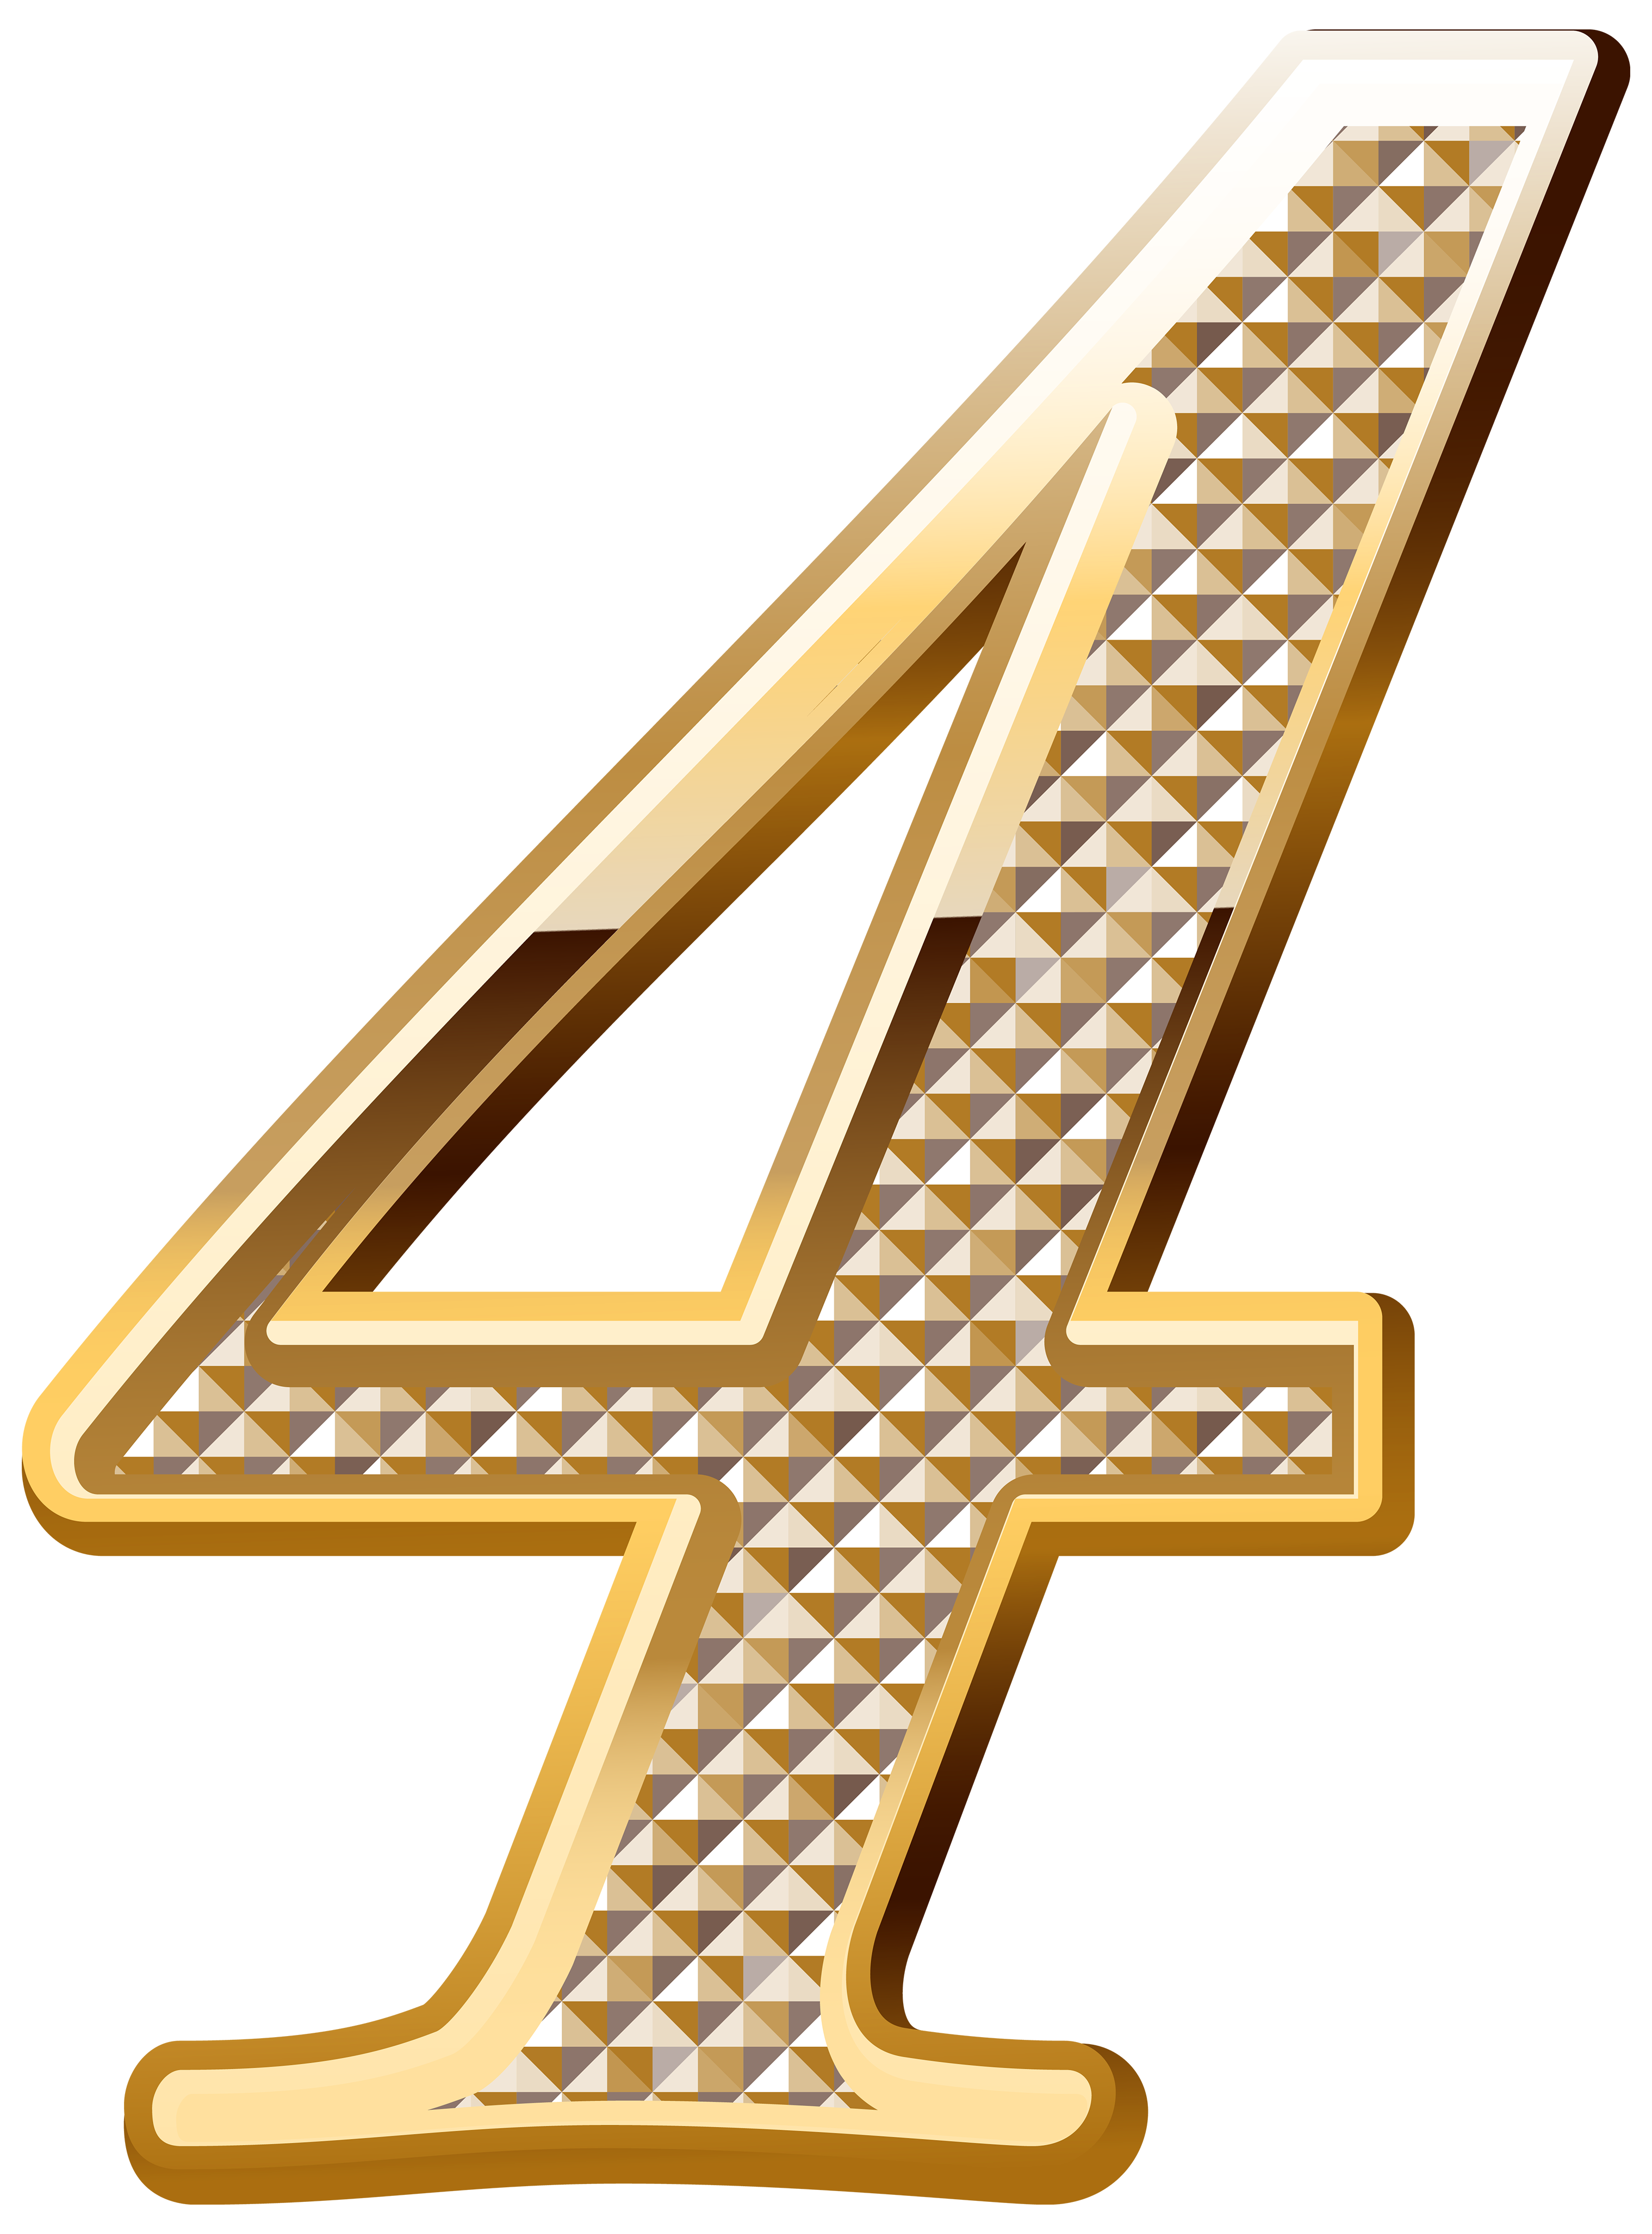 Deco four png image. Number 4 clipart gold